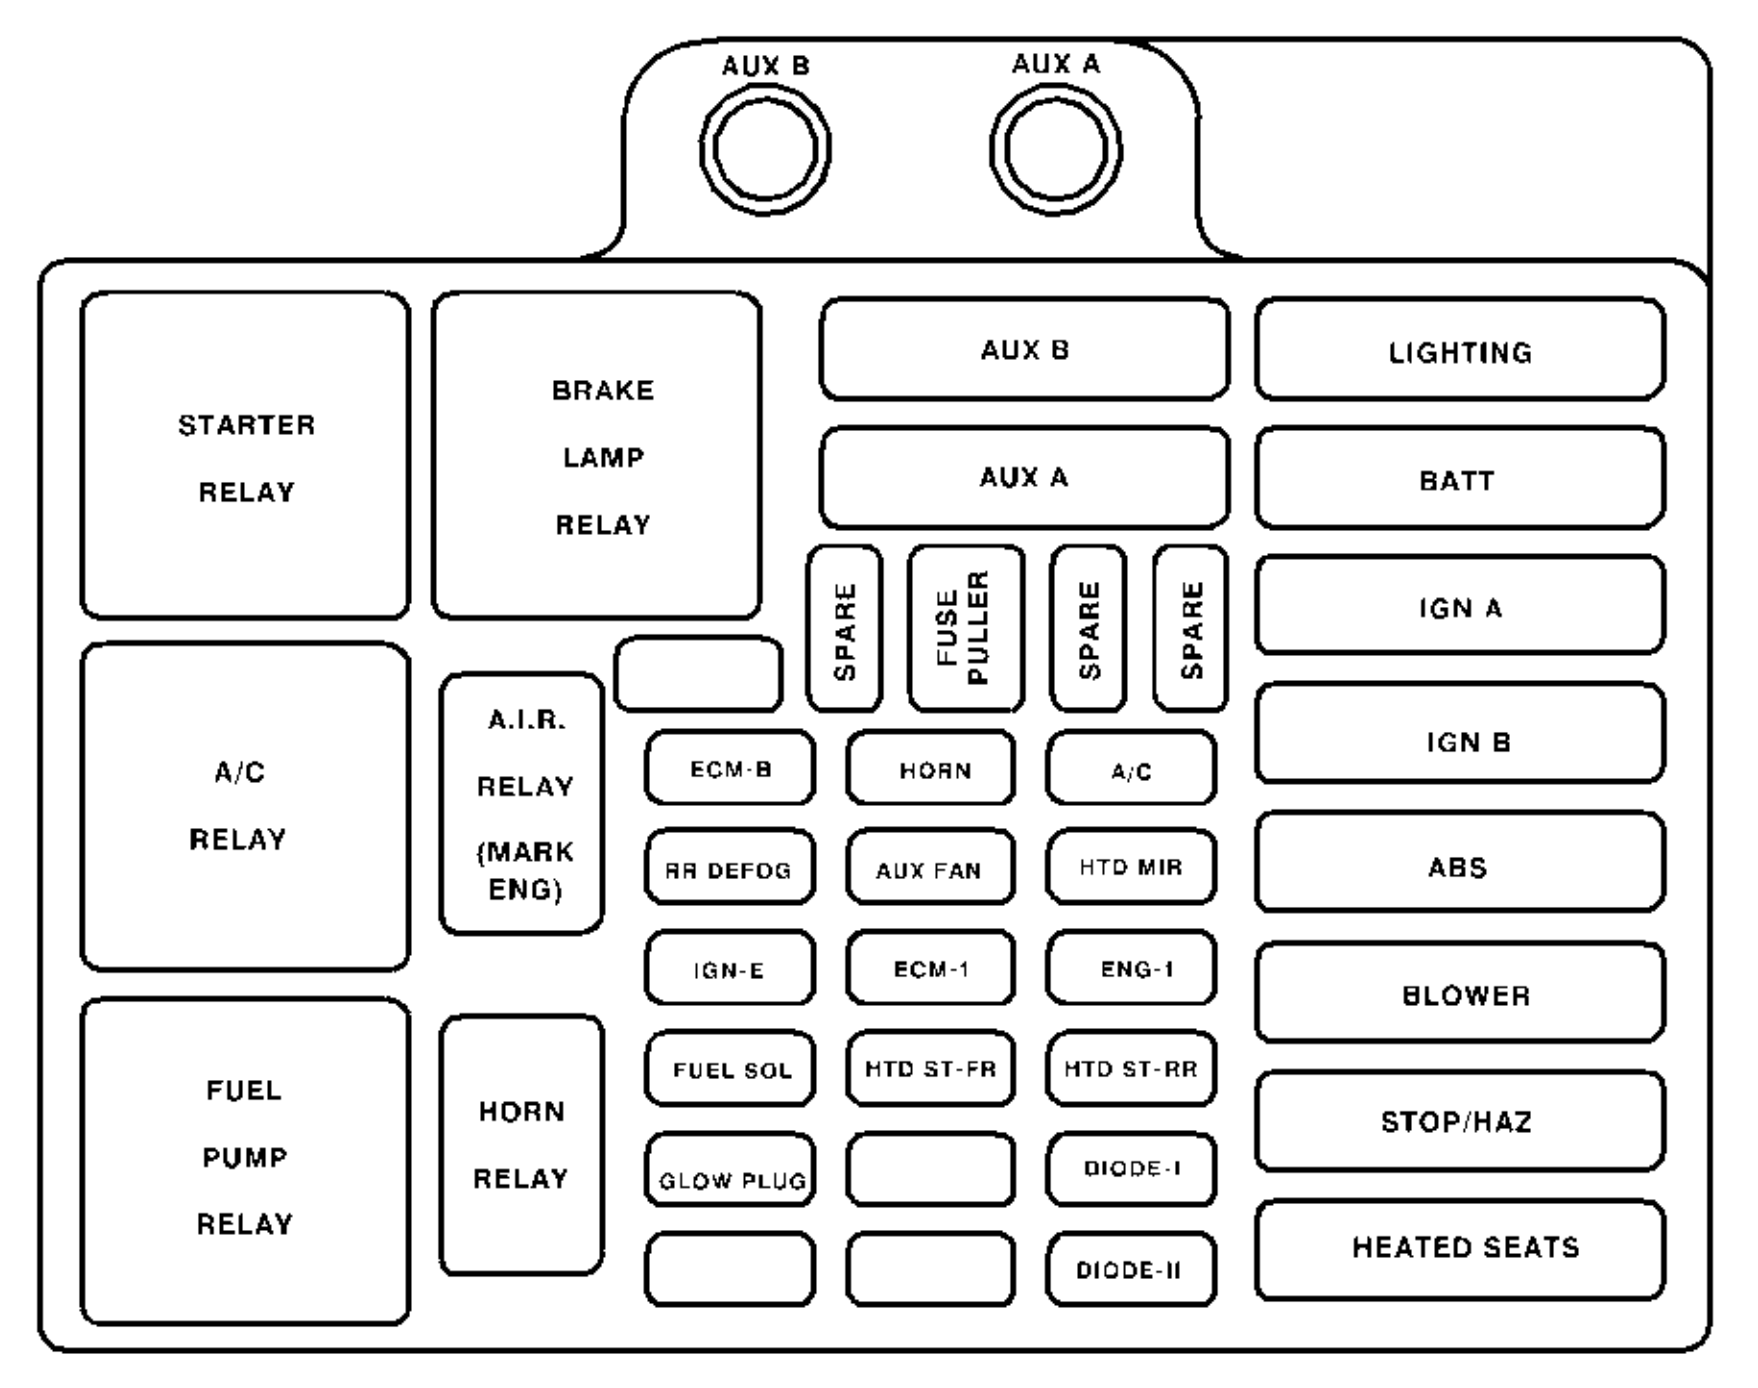 hight resolution of 1996 gmc fuse box wiring diagram rows 1990 gmc sierra fuse panel diagram 1996 gmc fuse